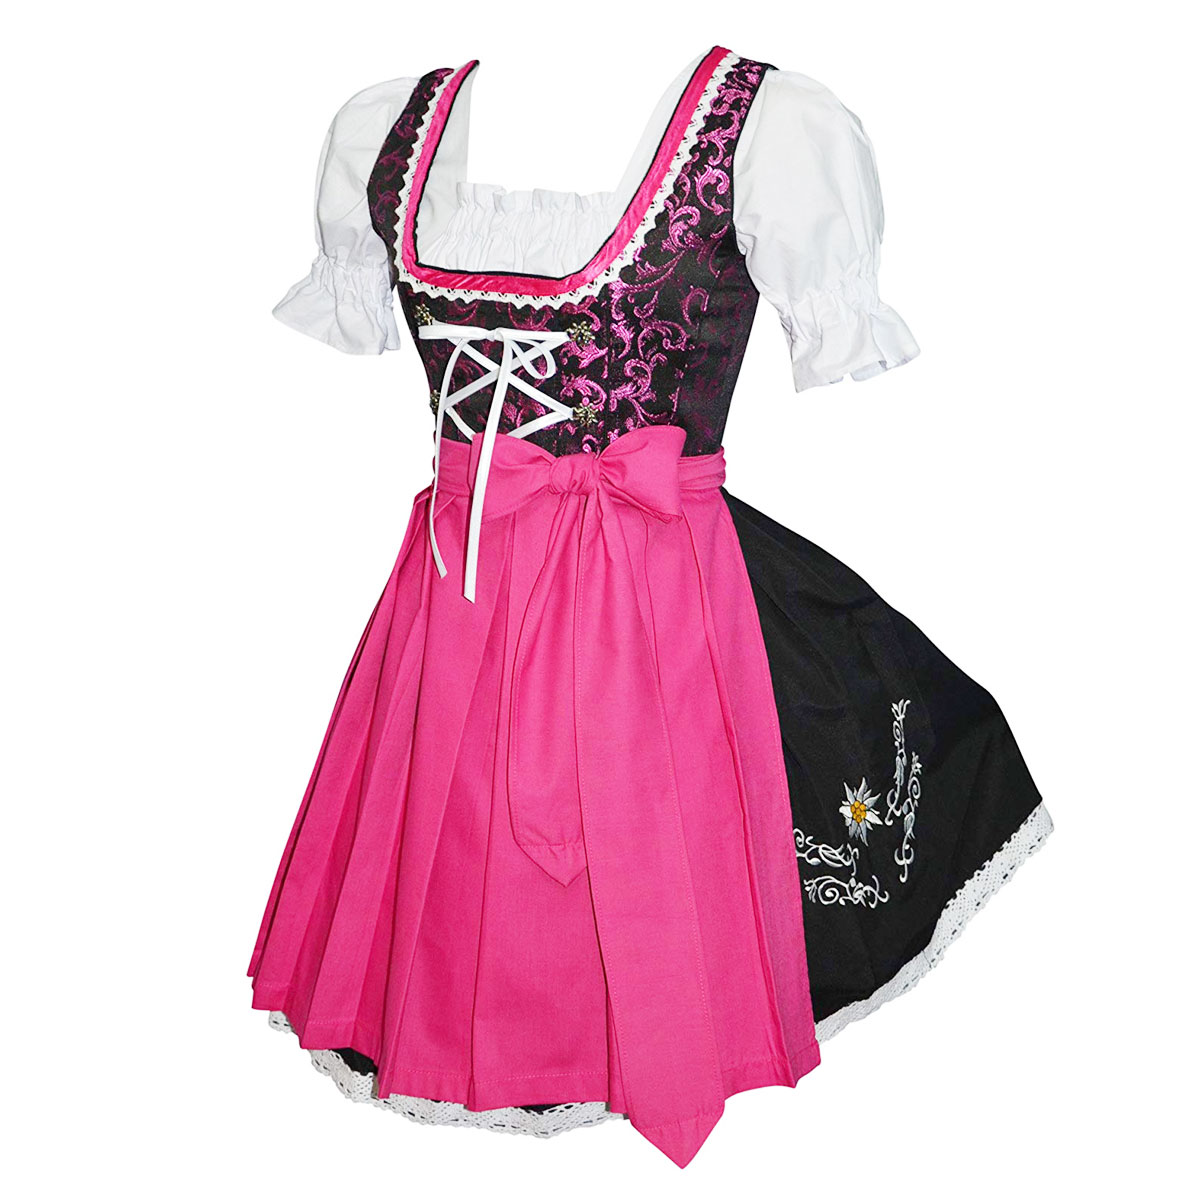 BLACK DIRNDL WITH FLOWERS EMBROIDERY